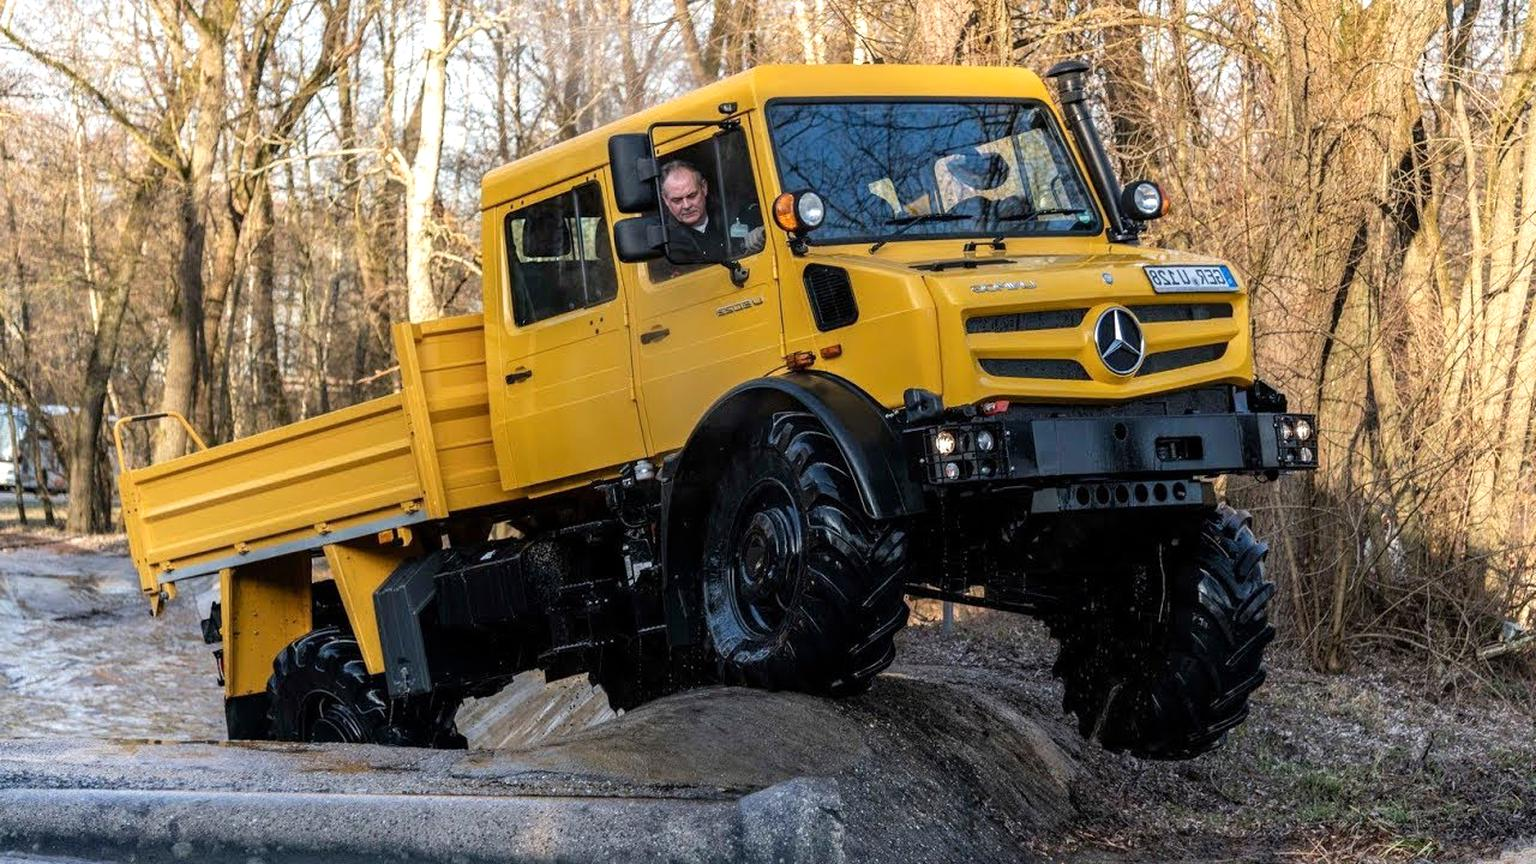 Unimog For Sale >> Unimog For Sale Only 3 Left At 70